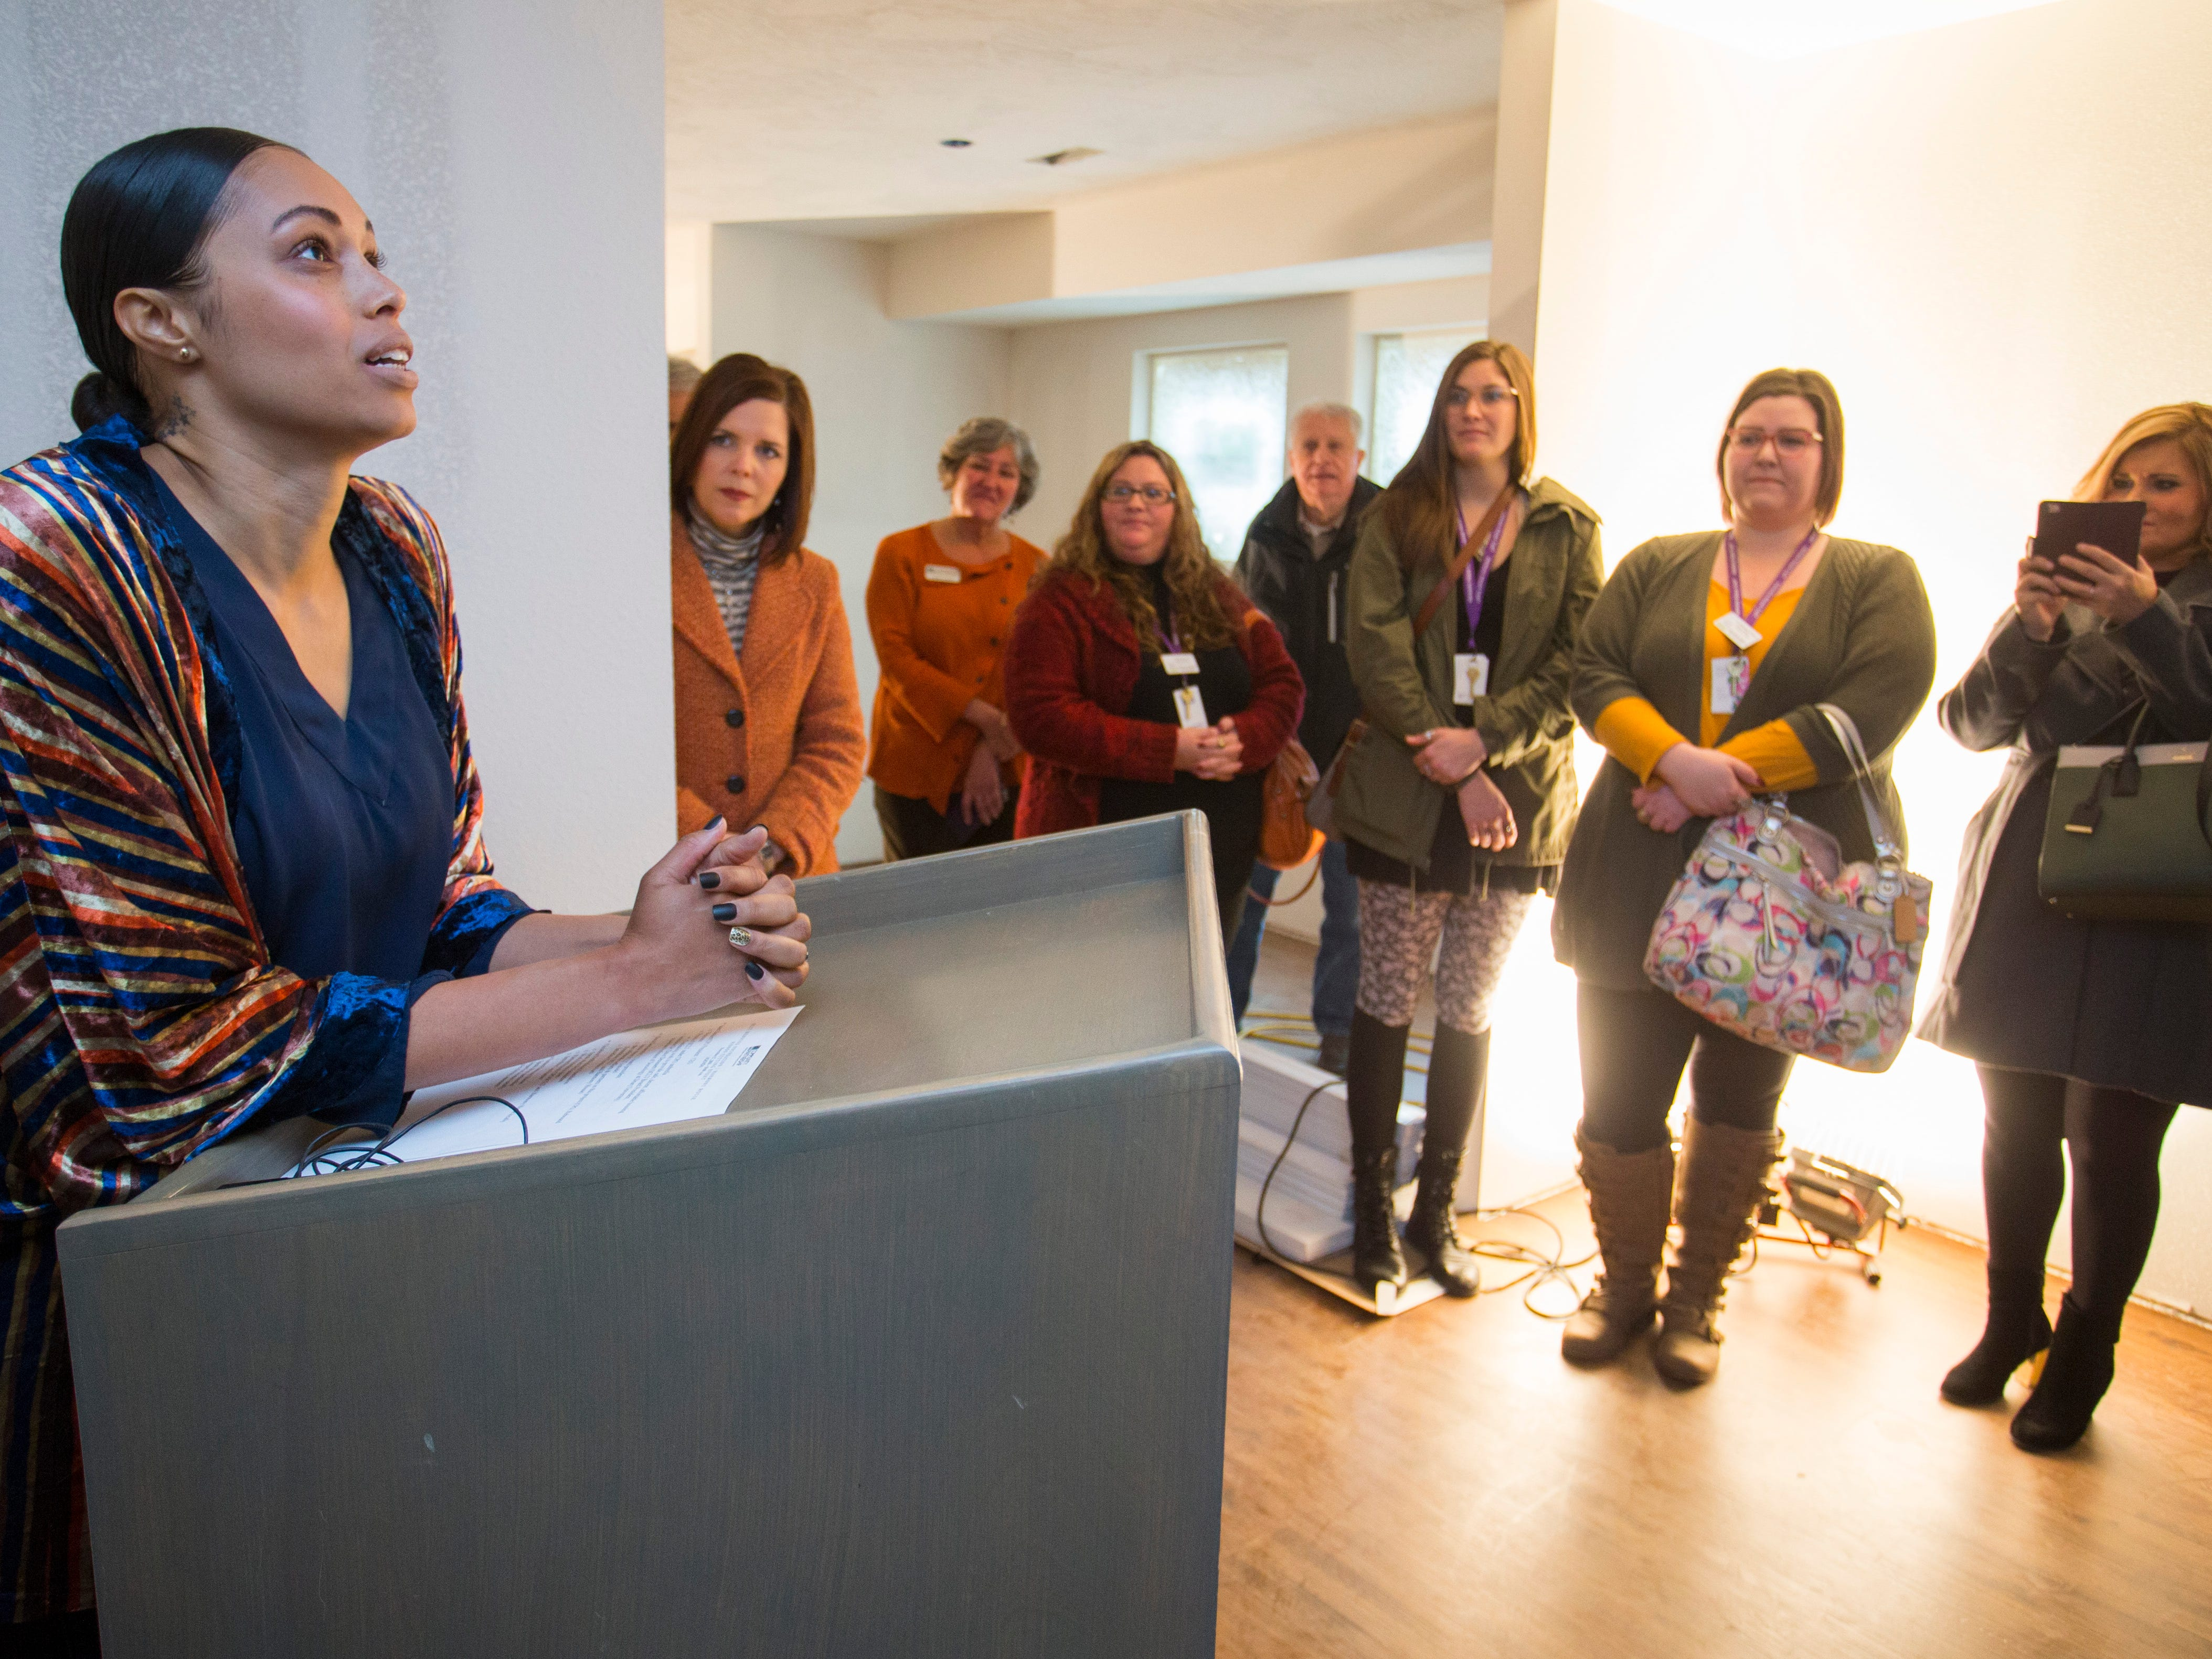 Christina Ford becomes emotional as she speaks about the opening of Marda's House, a transitional home for domestic violence victims, on Tuesday, Nov. 27, 2018.